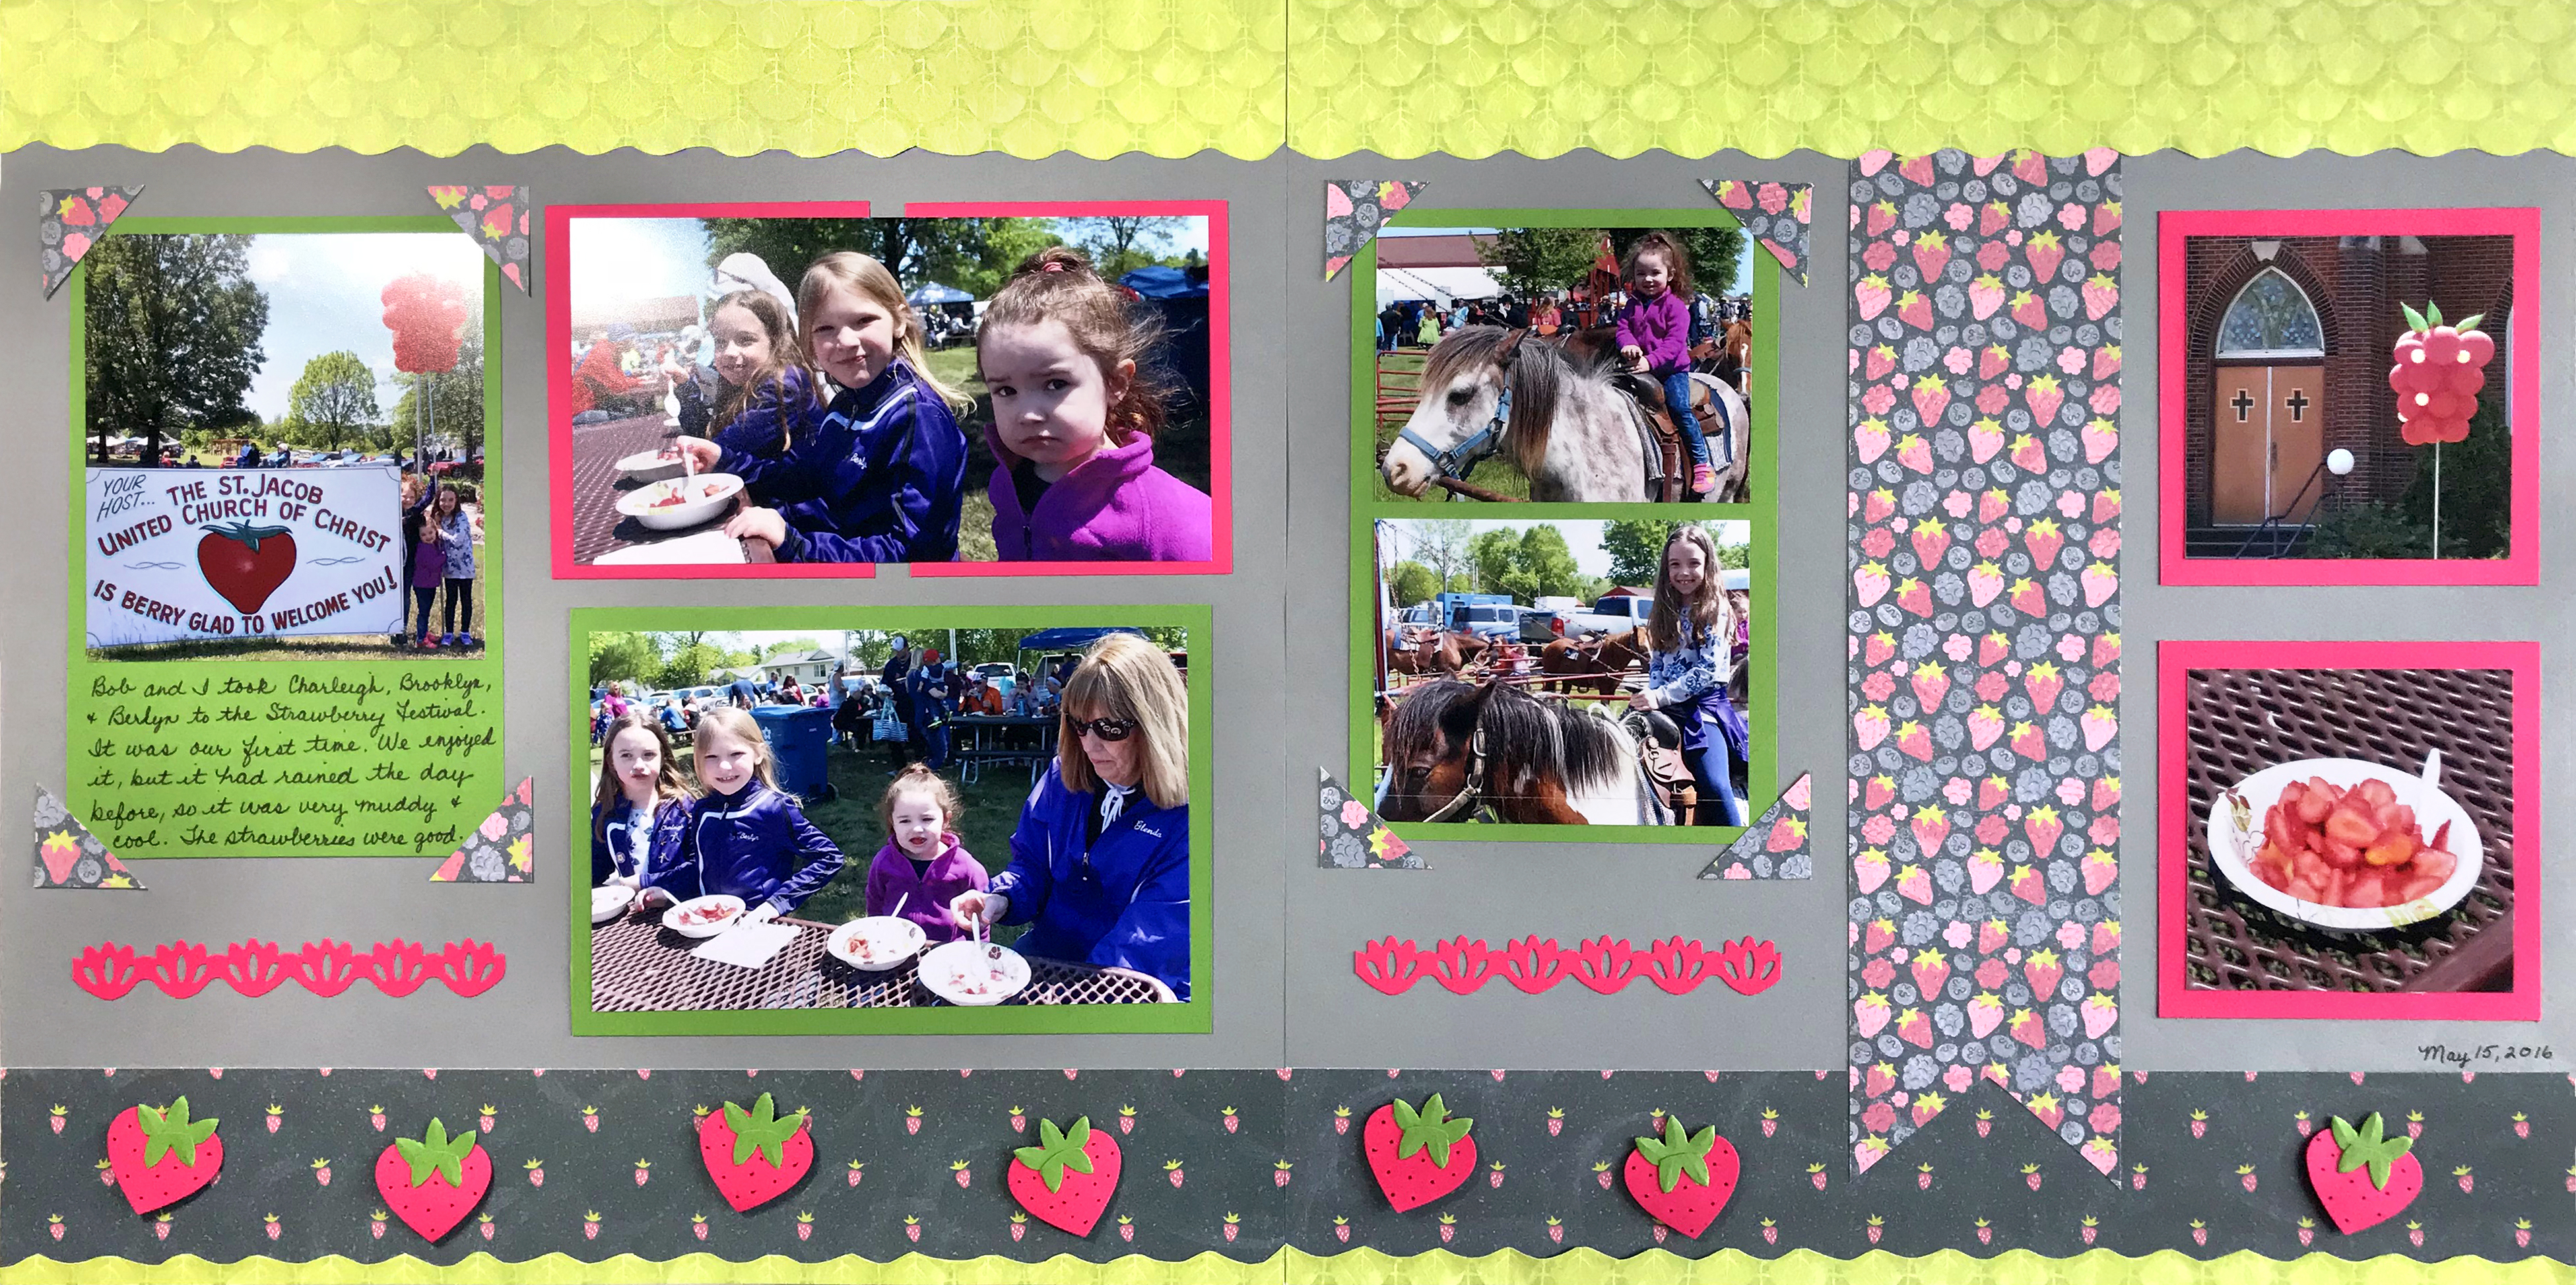 locally-grown-strawberry-scrapbook-layout-creative-memories